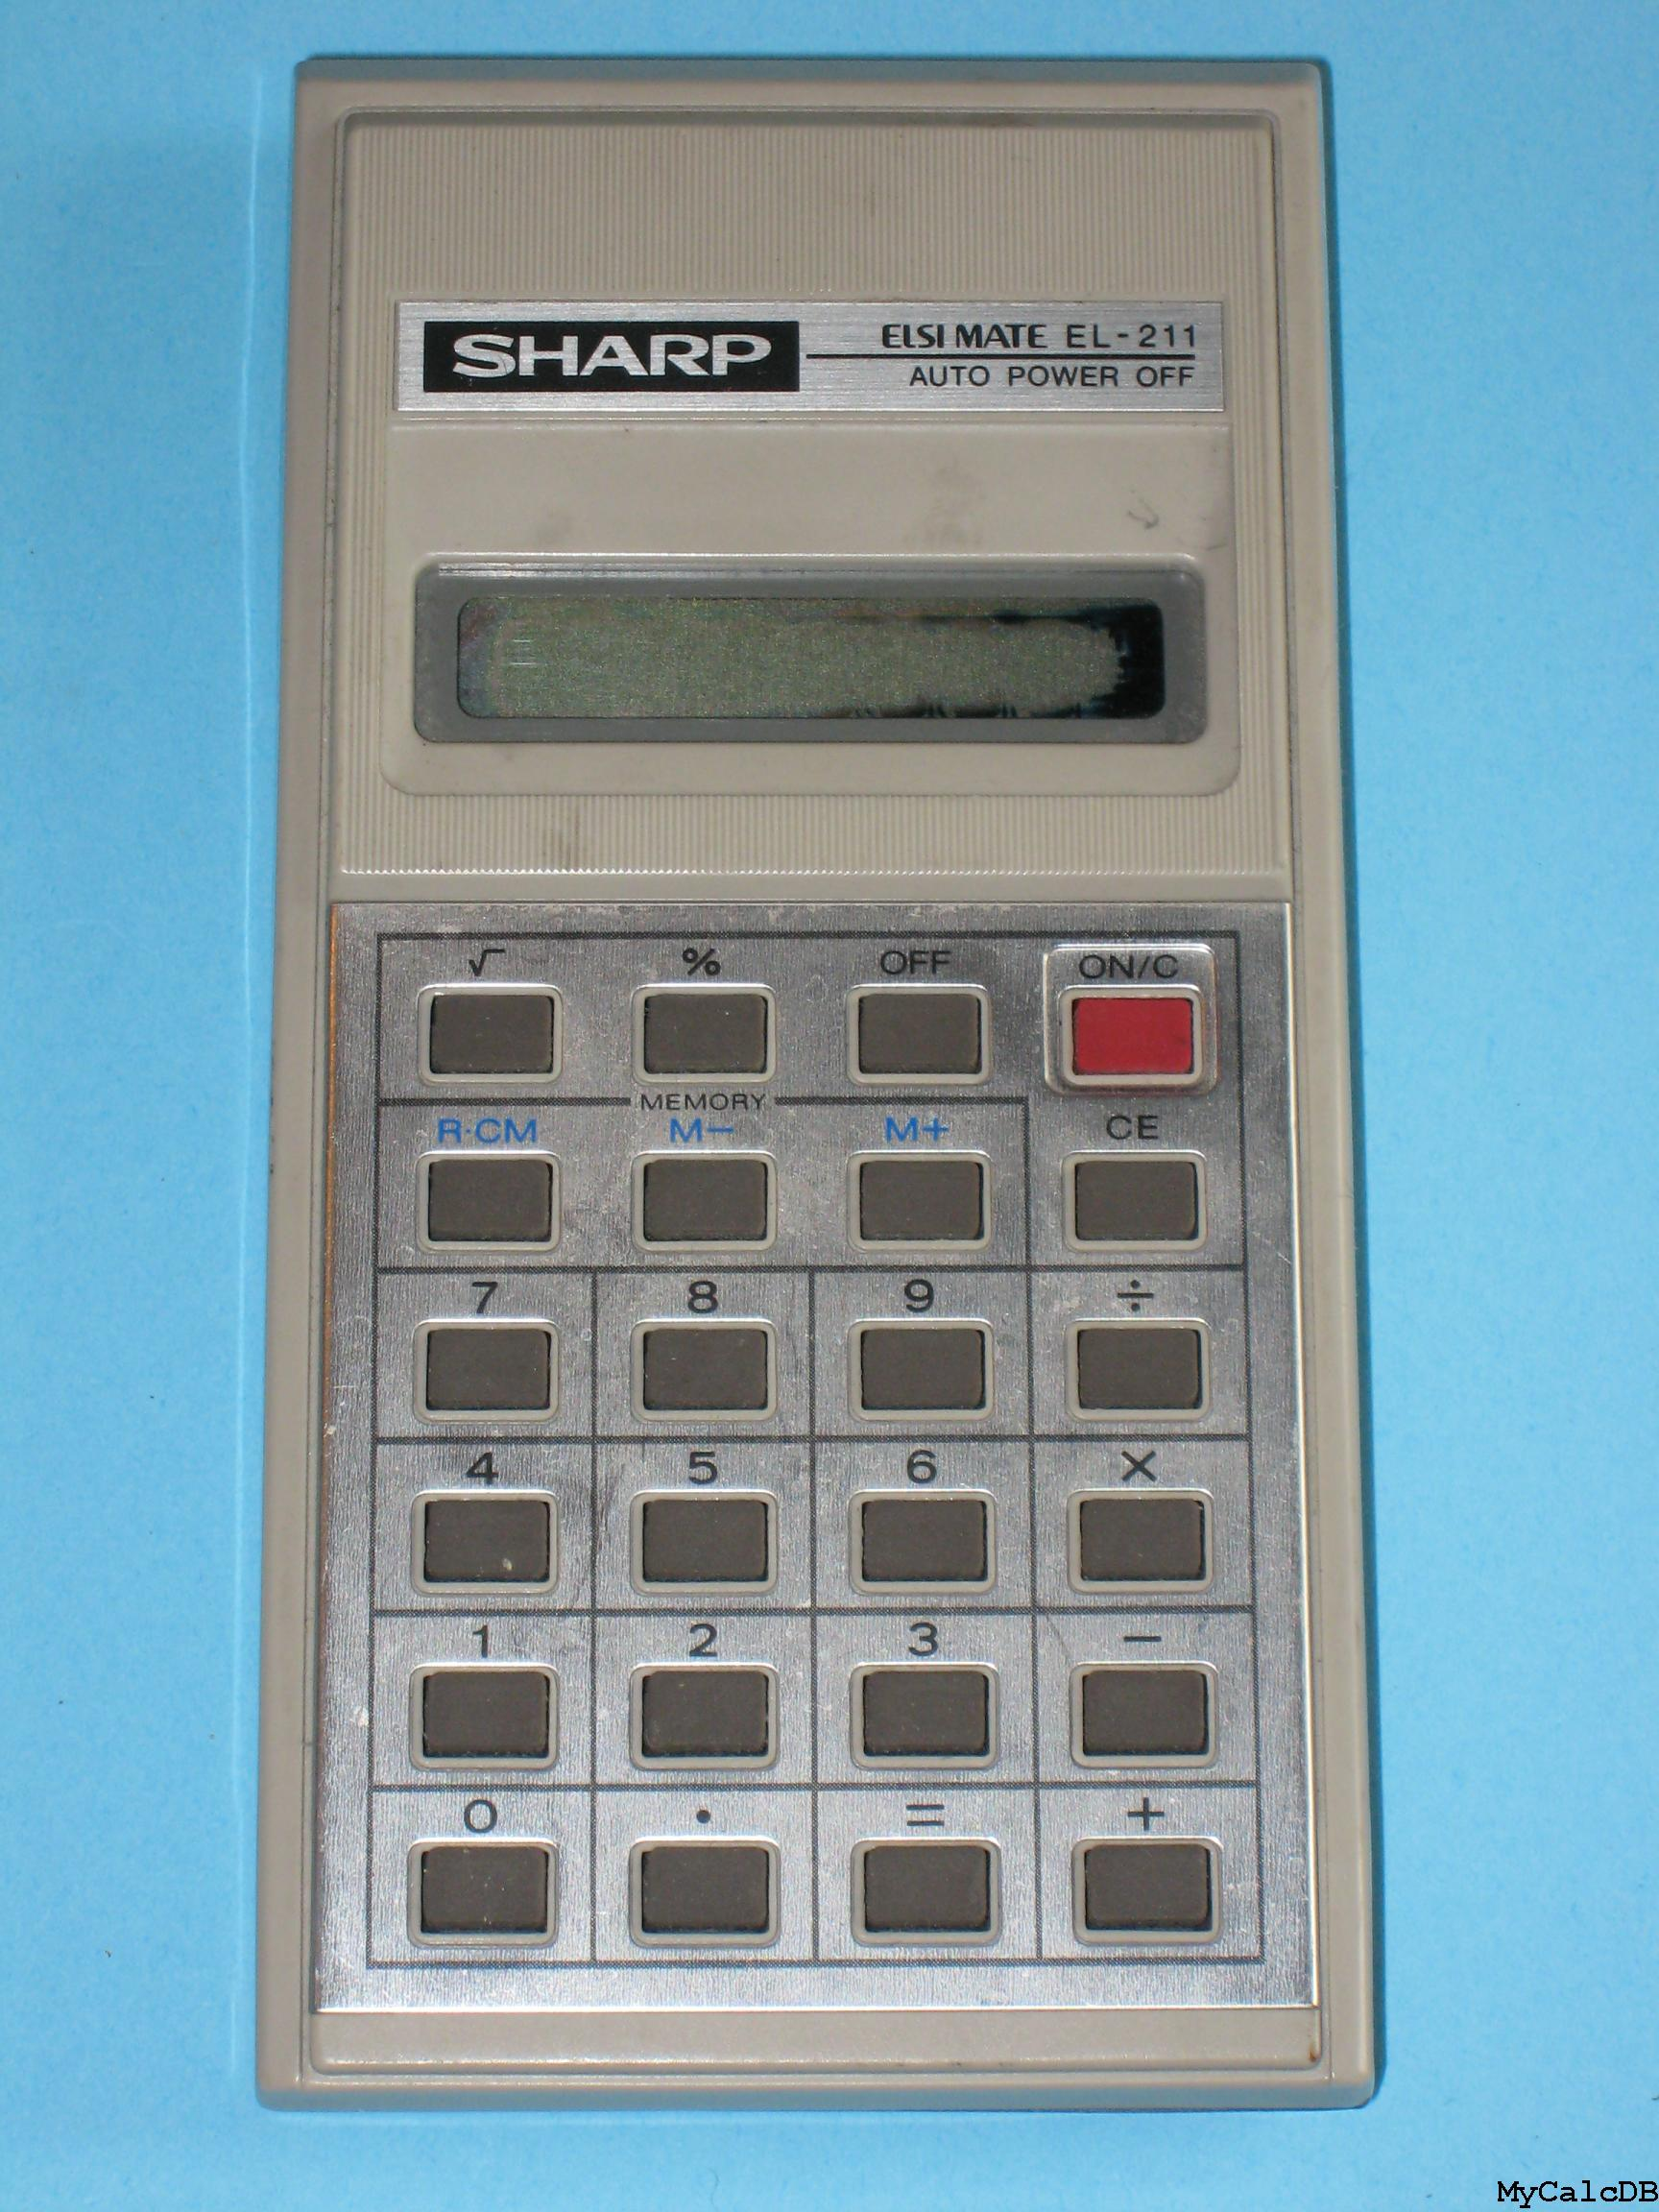 Sharp EL-211